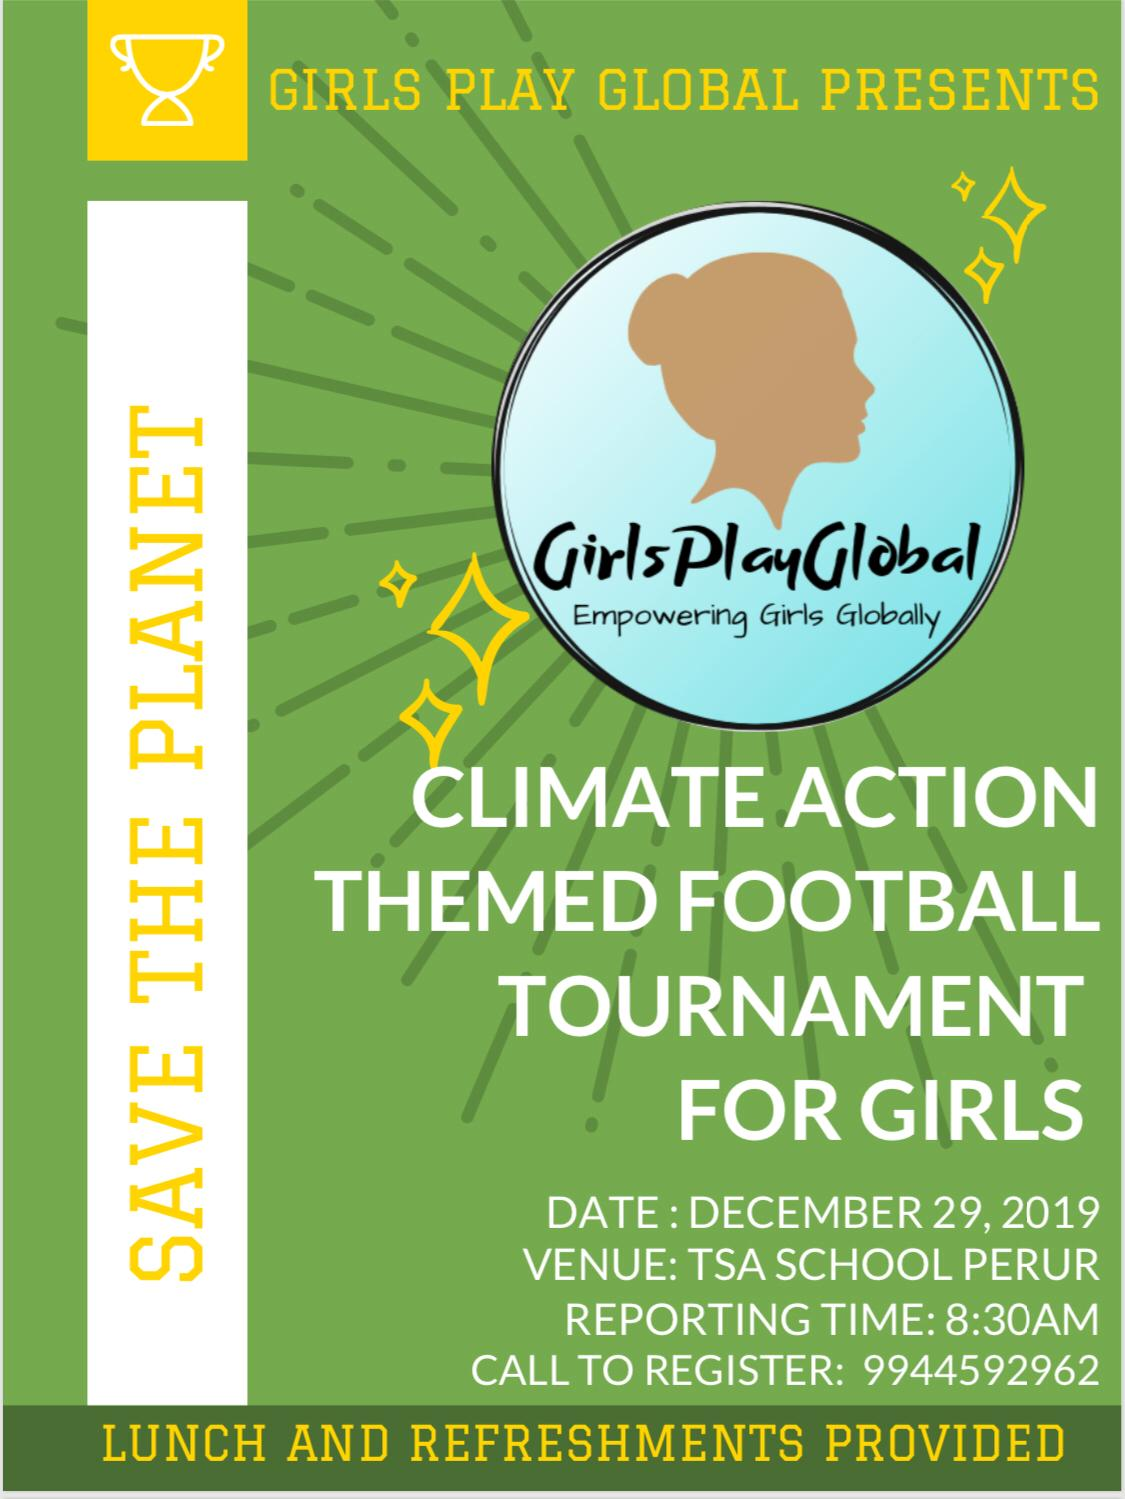 Climate Action Themed Football Tournament For Girls